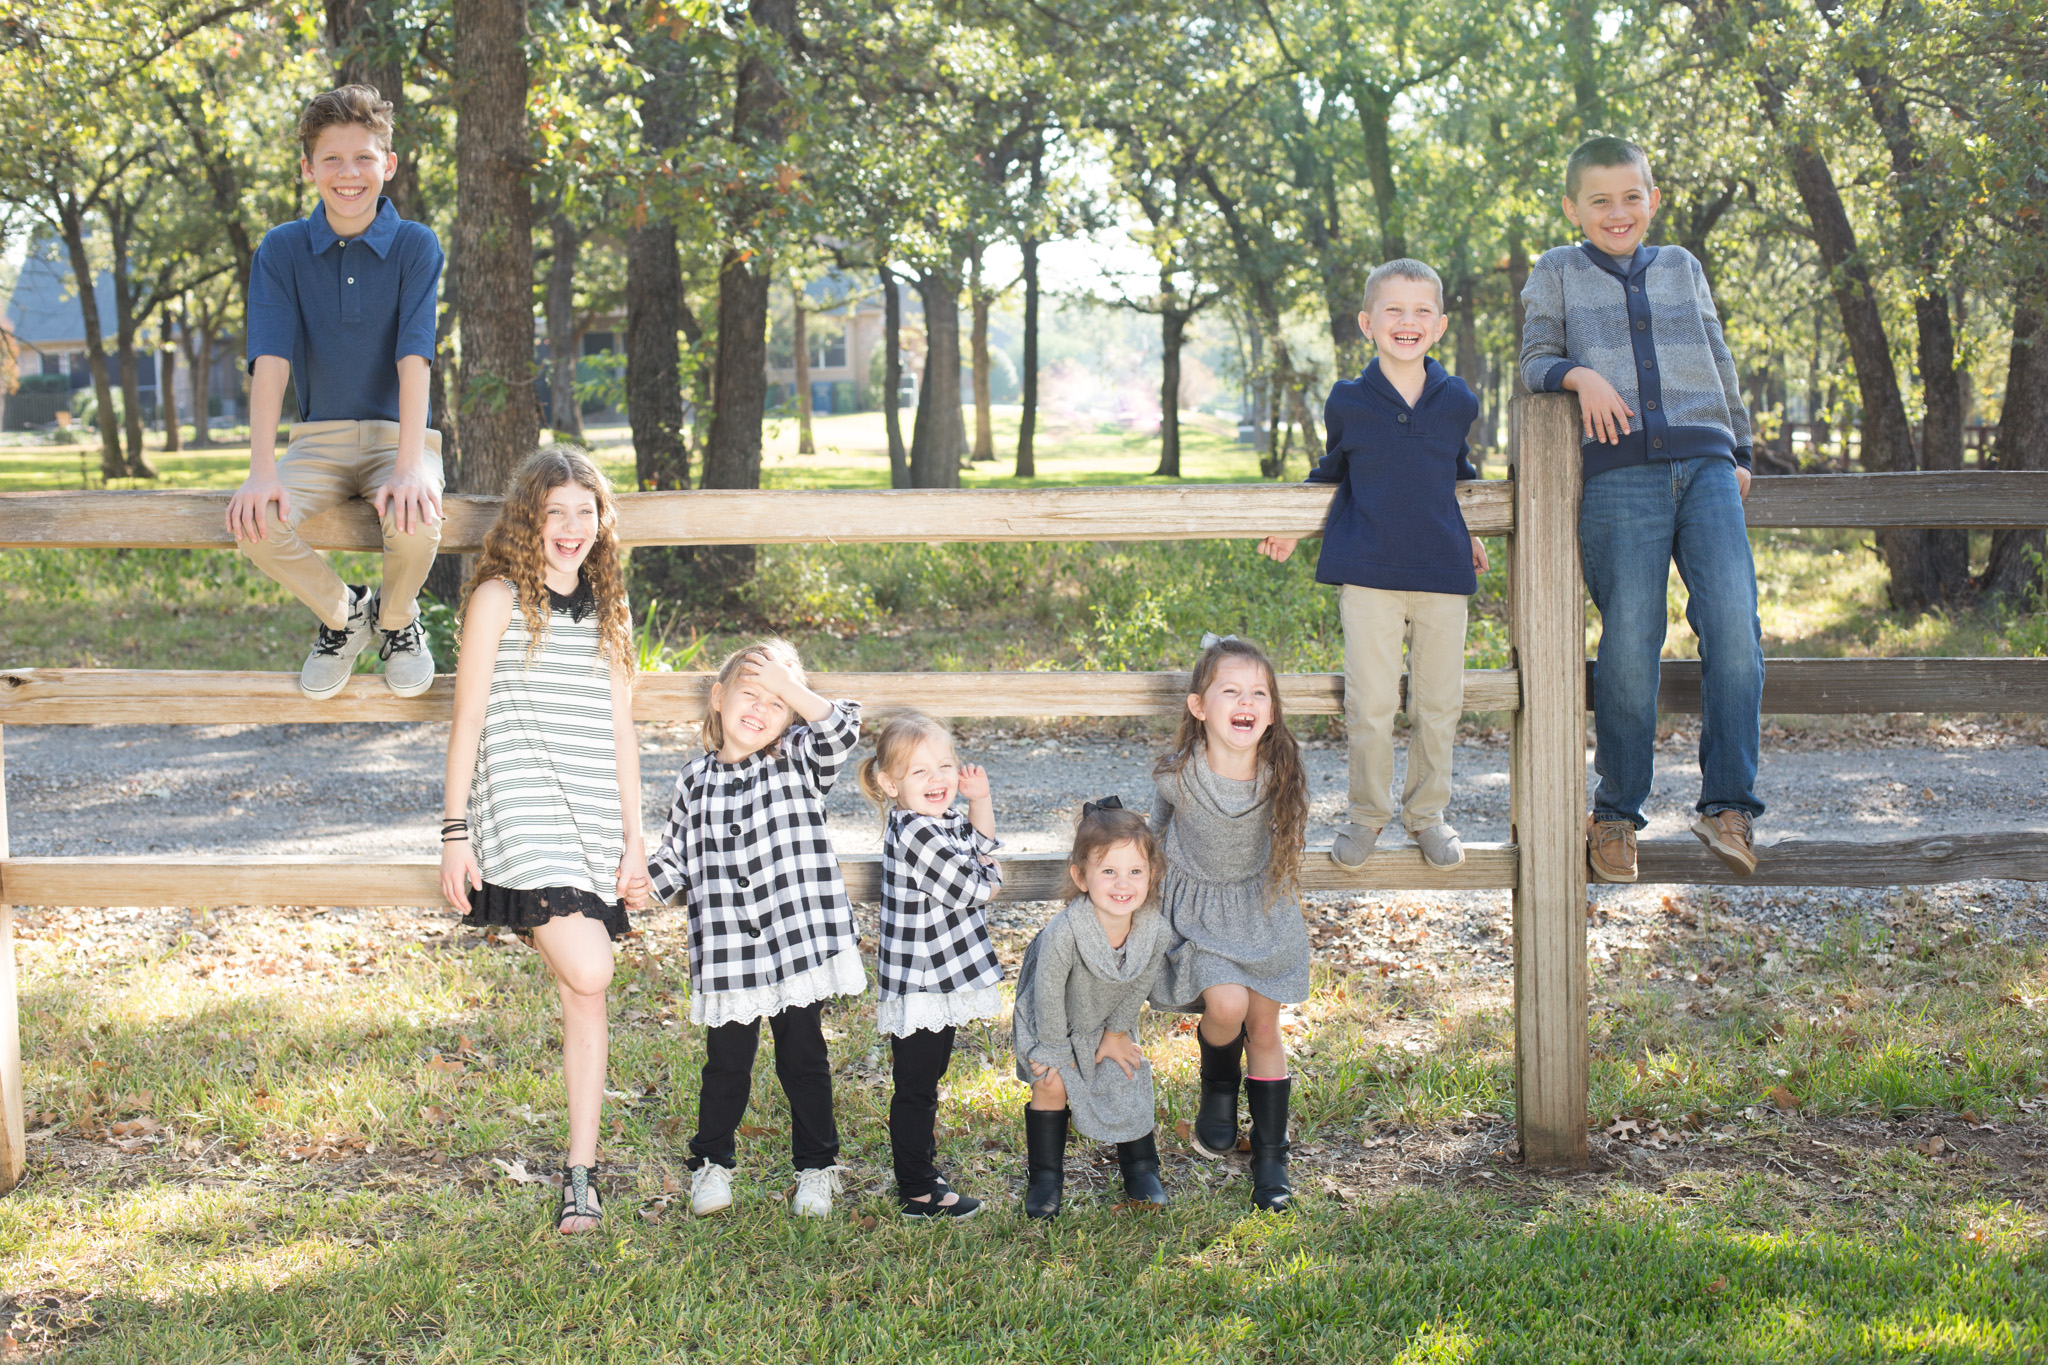 Izehi Photography Dallas Fort Worth Argyle Tx Extended Family Portrait Photographer-104.jpg